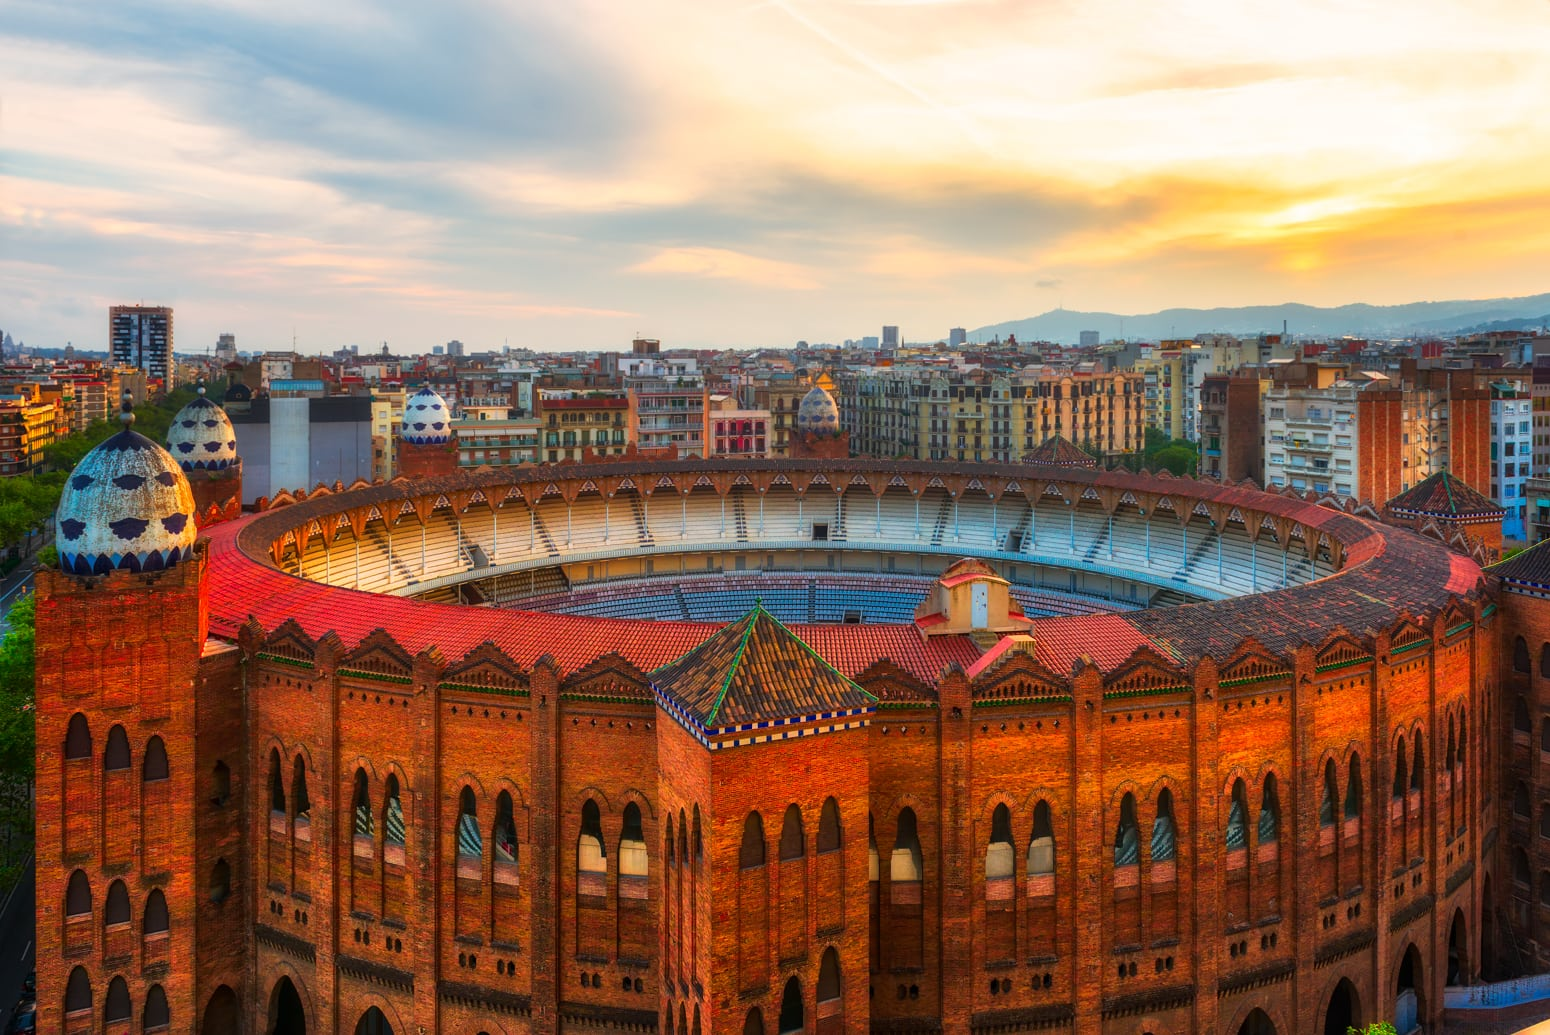 "Bullfighting arena ""La Monumental"" in Barcelona, Spain seen from above with surrounding houses of Eixample district"